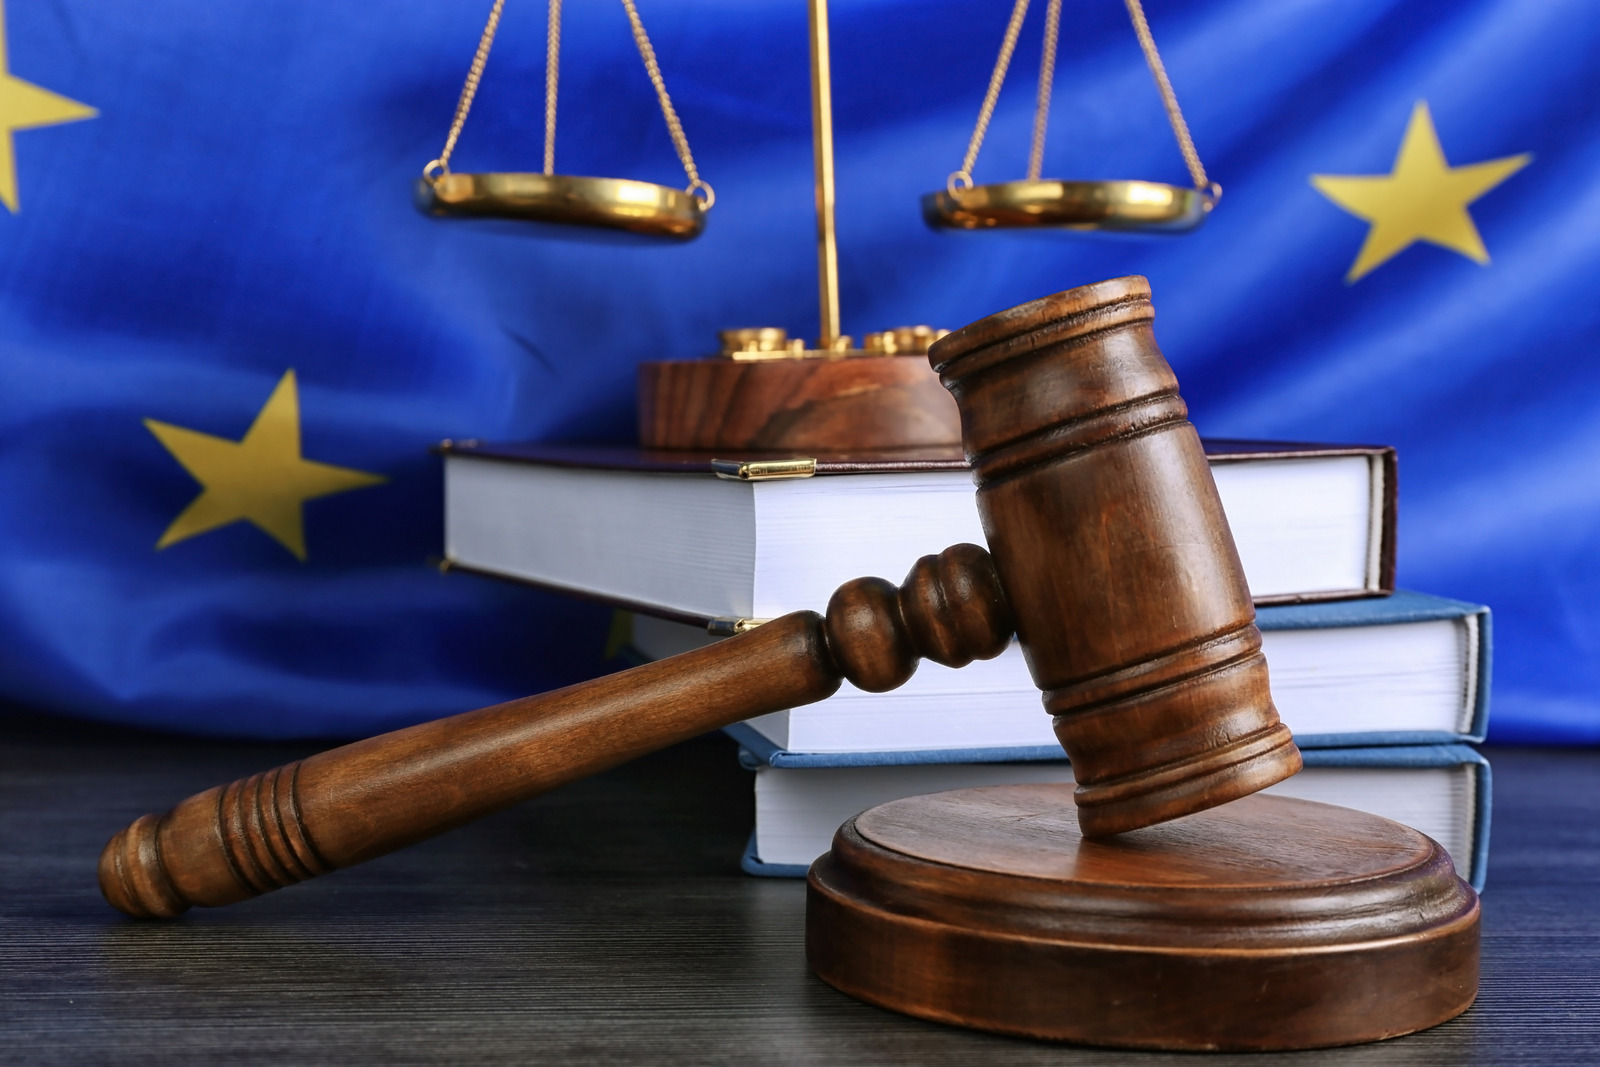 Protecting our fundamental values: Mechanism on Democracy, Rule of Law and Fundamental Rights